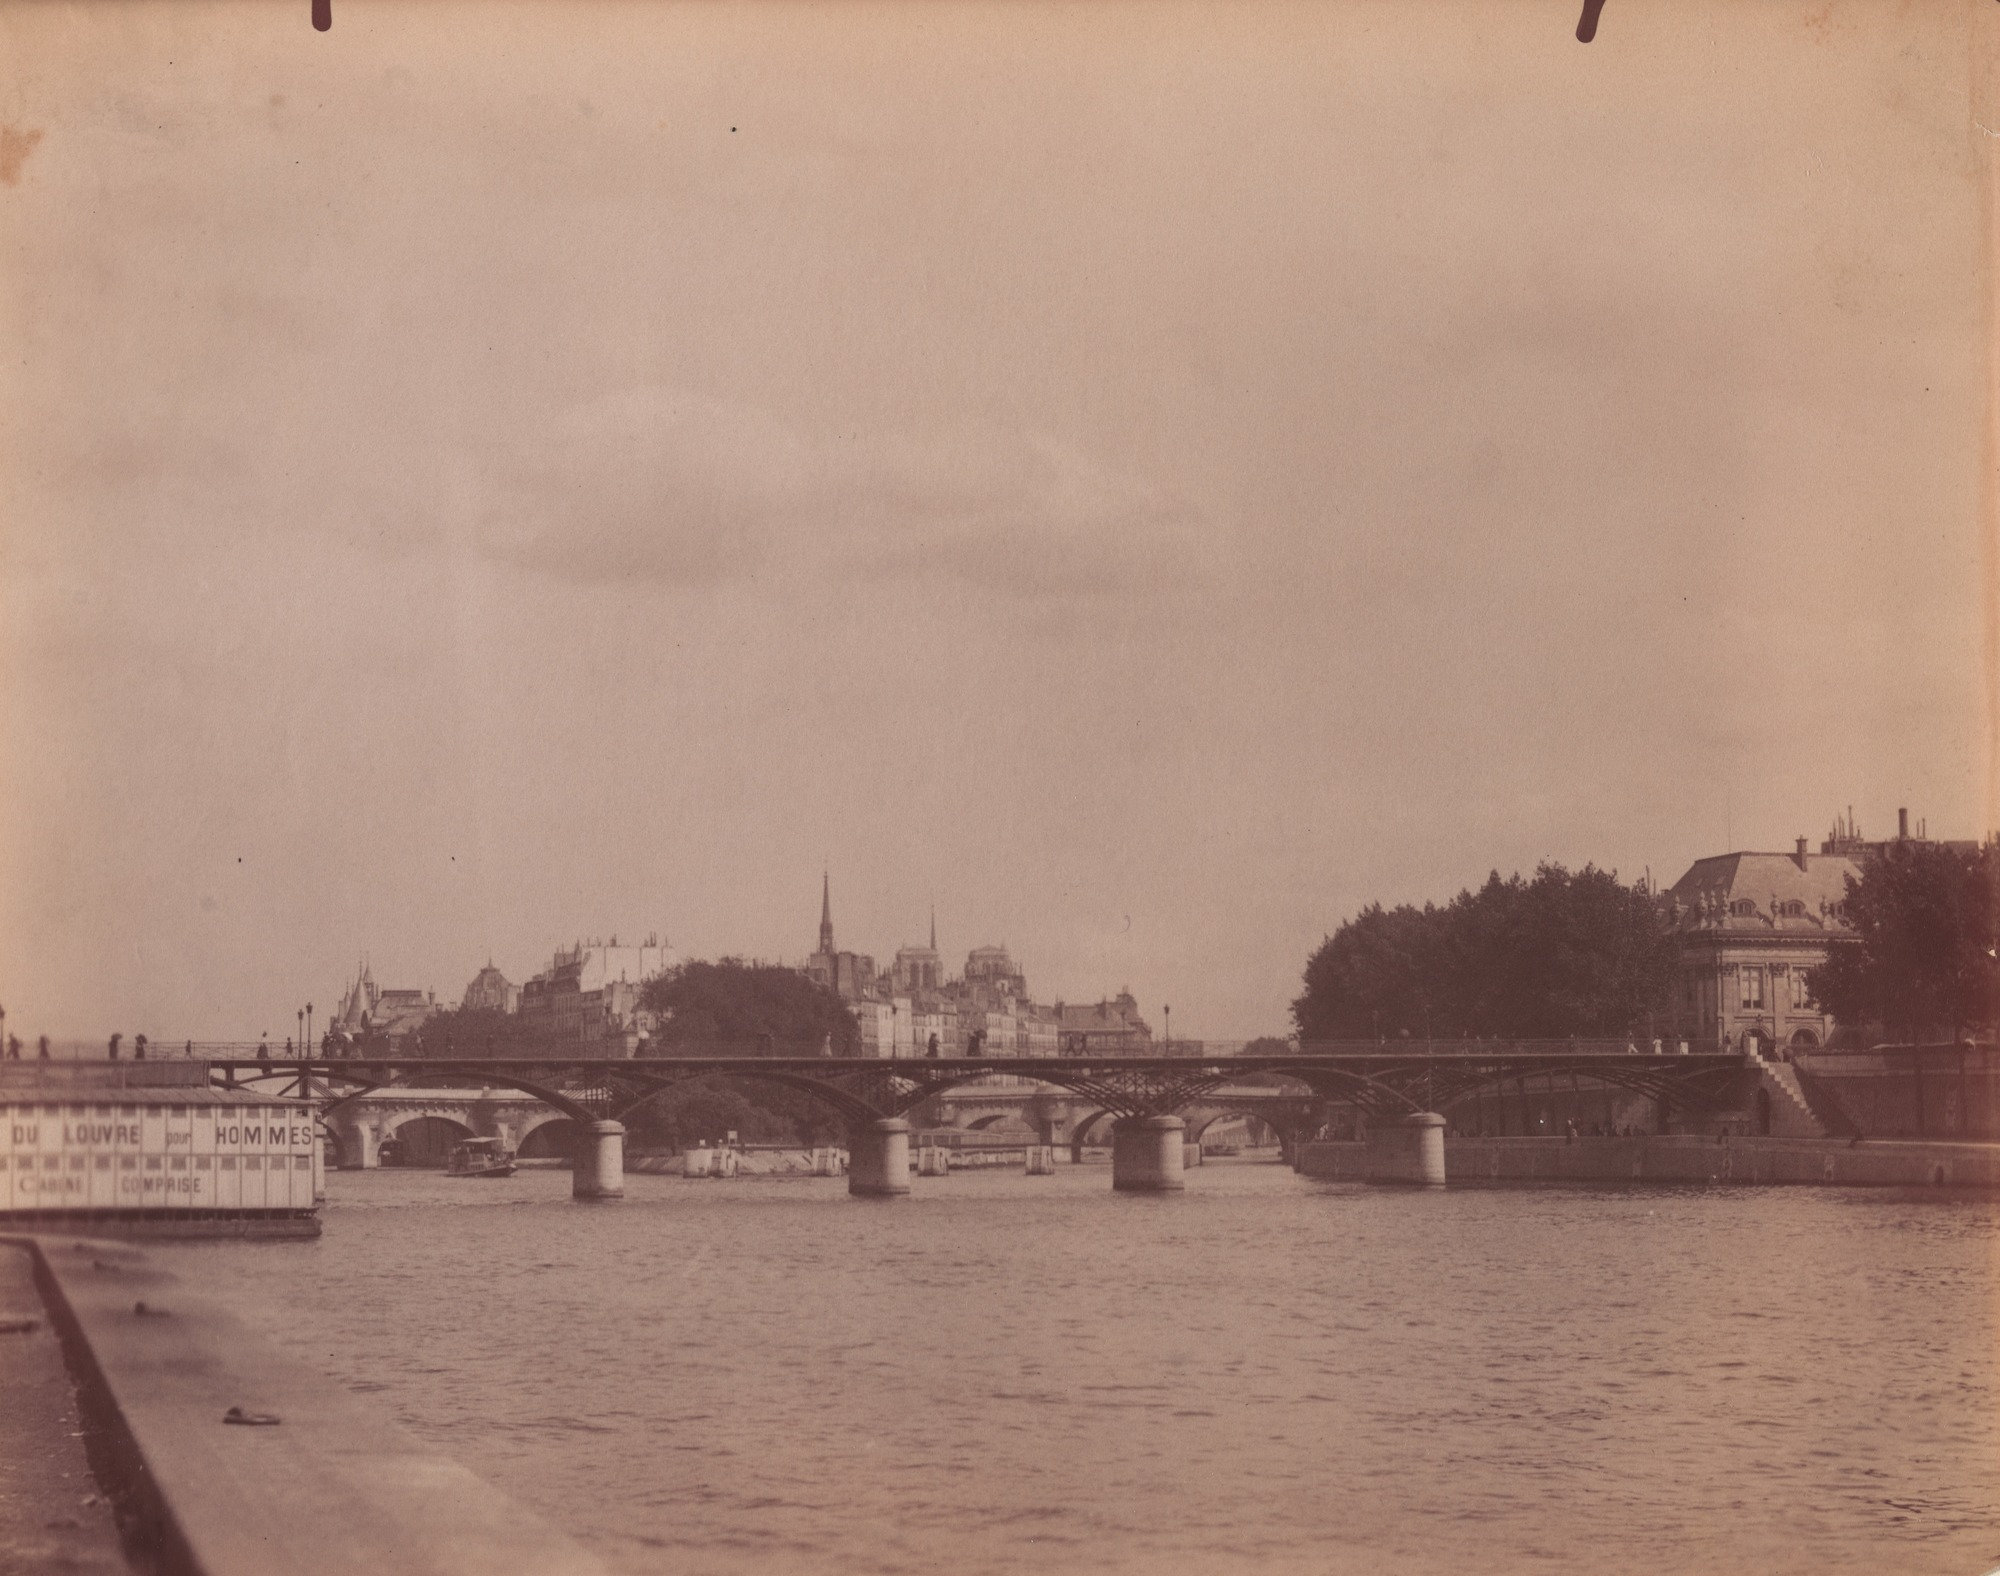 Eugène Atget, Untitled [View of the Seine and the Ile de la Cité]. 1899 Source:  Lien